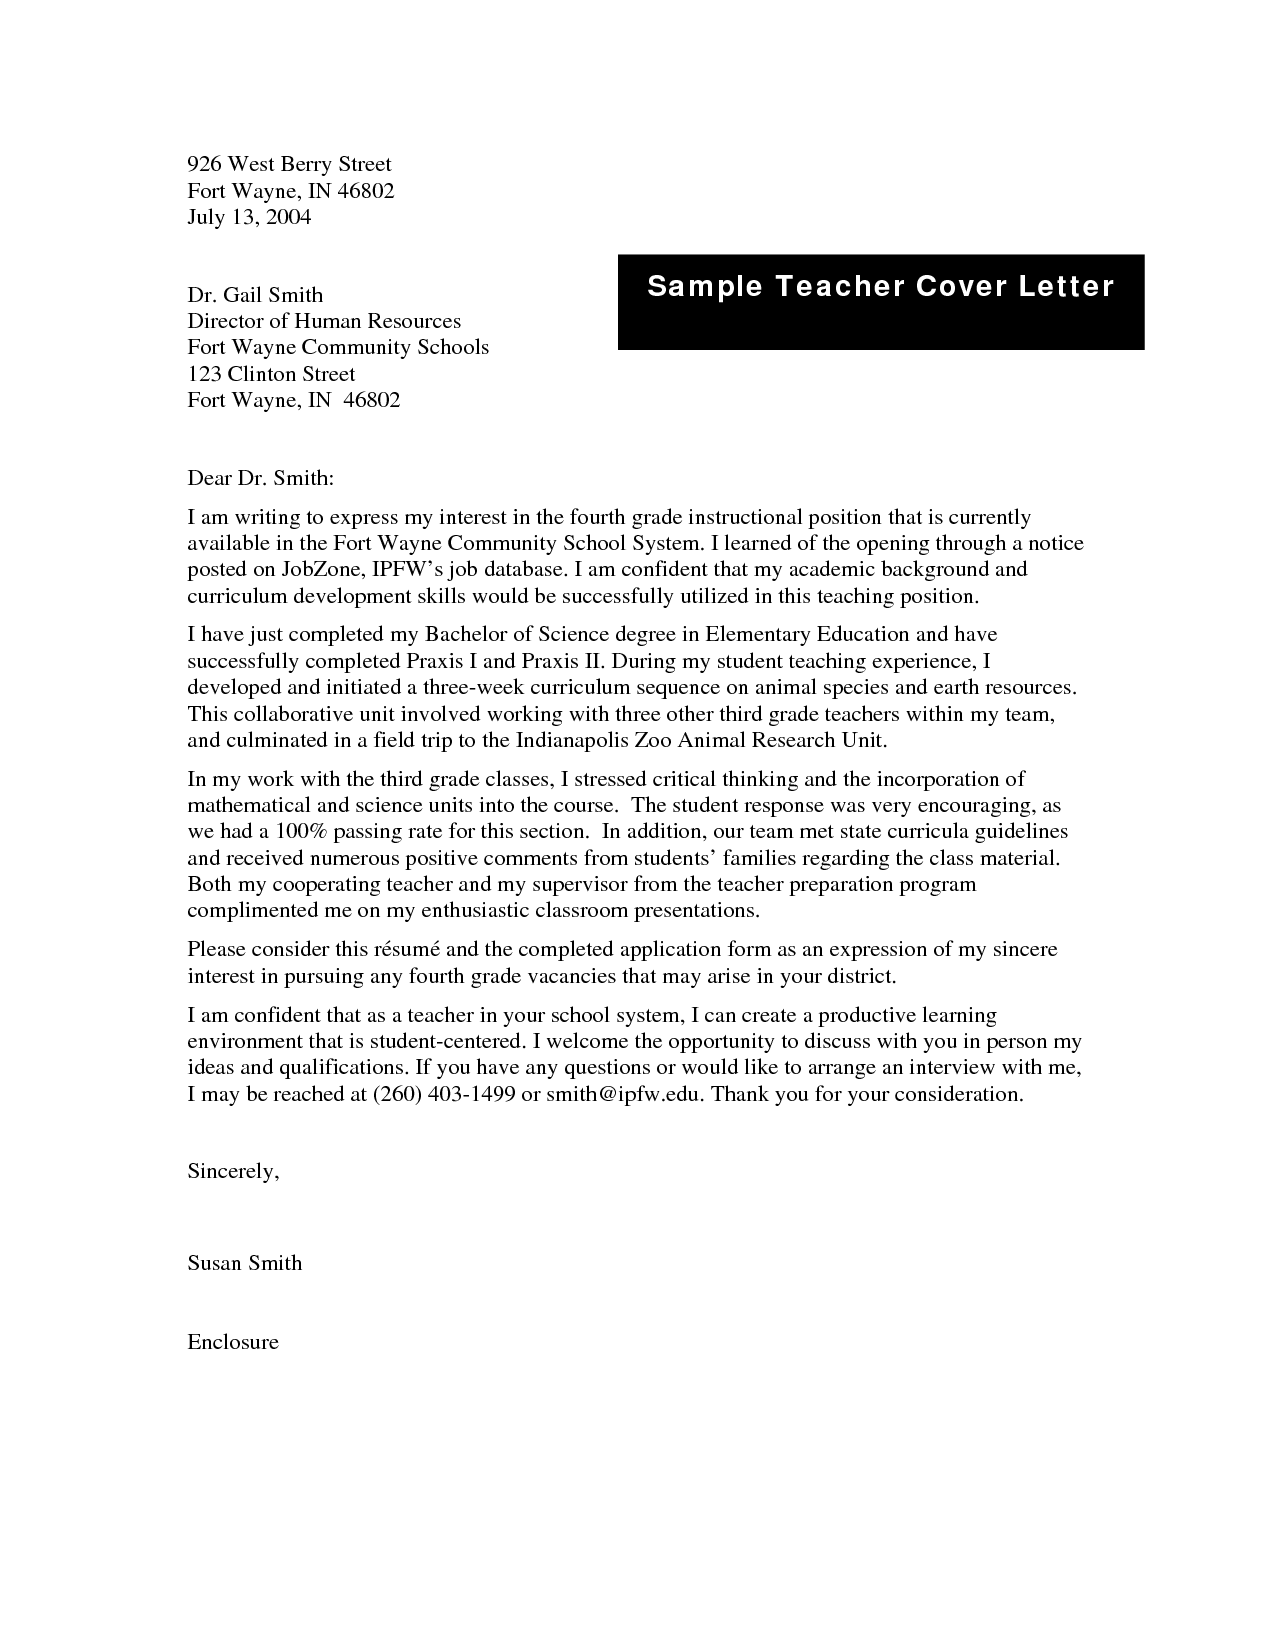 Great Cover Letter For Teachers With Preferred Qualification And